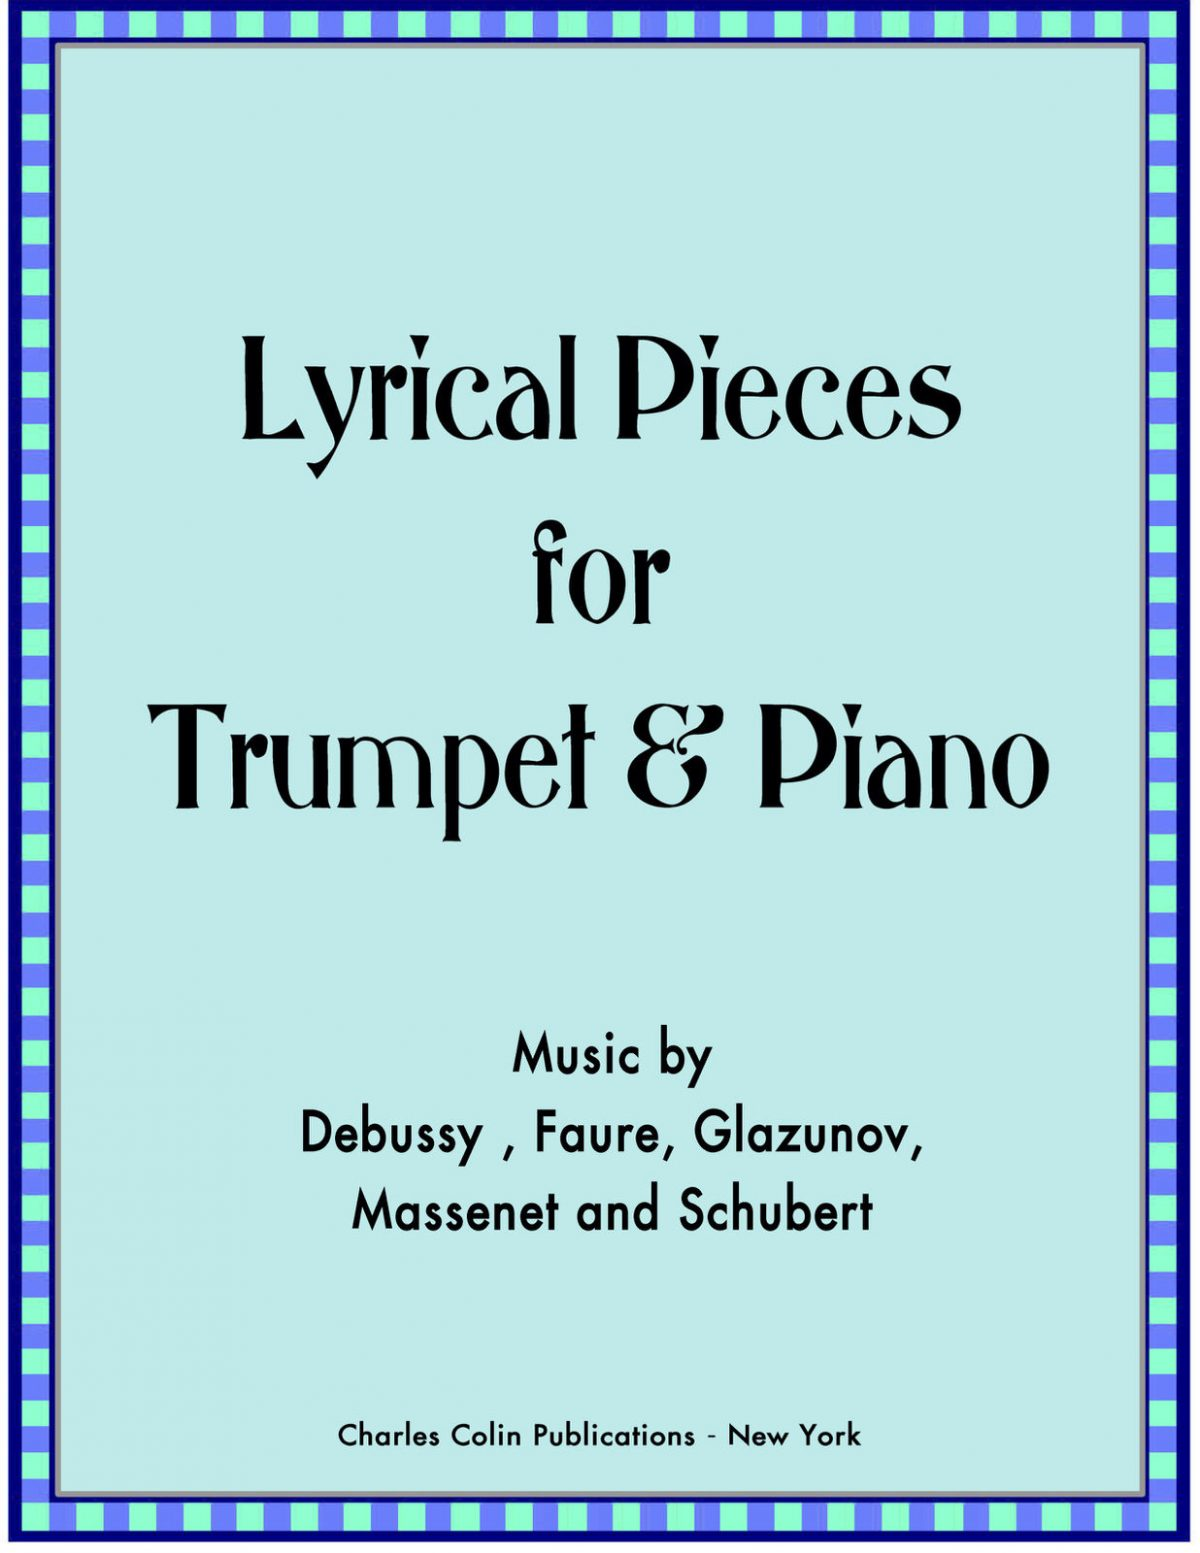 Ponzo, Lyrical Pieces for Trumpet and Piano